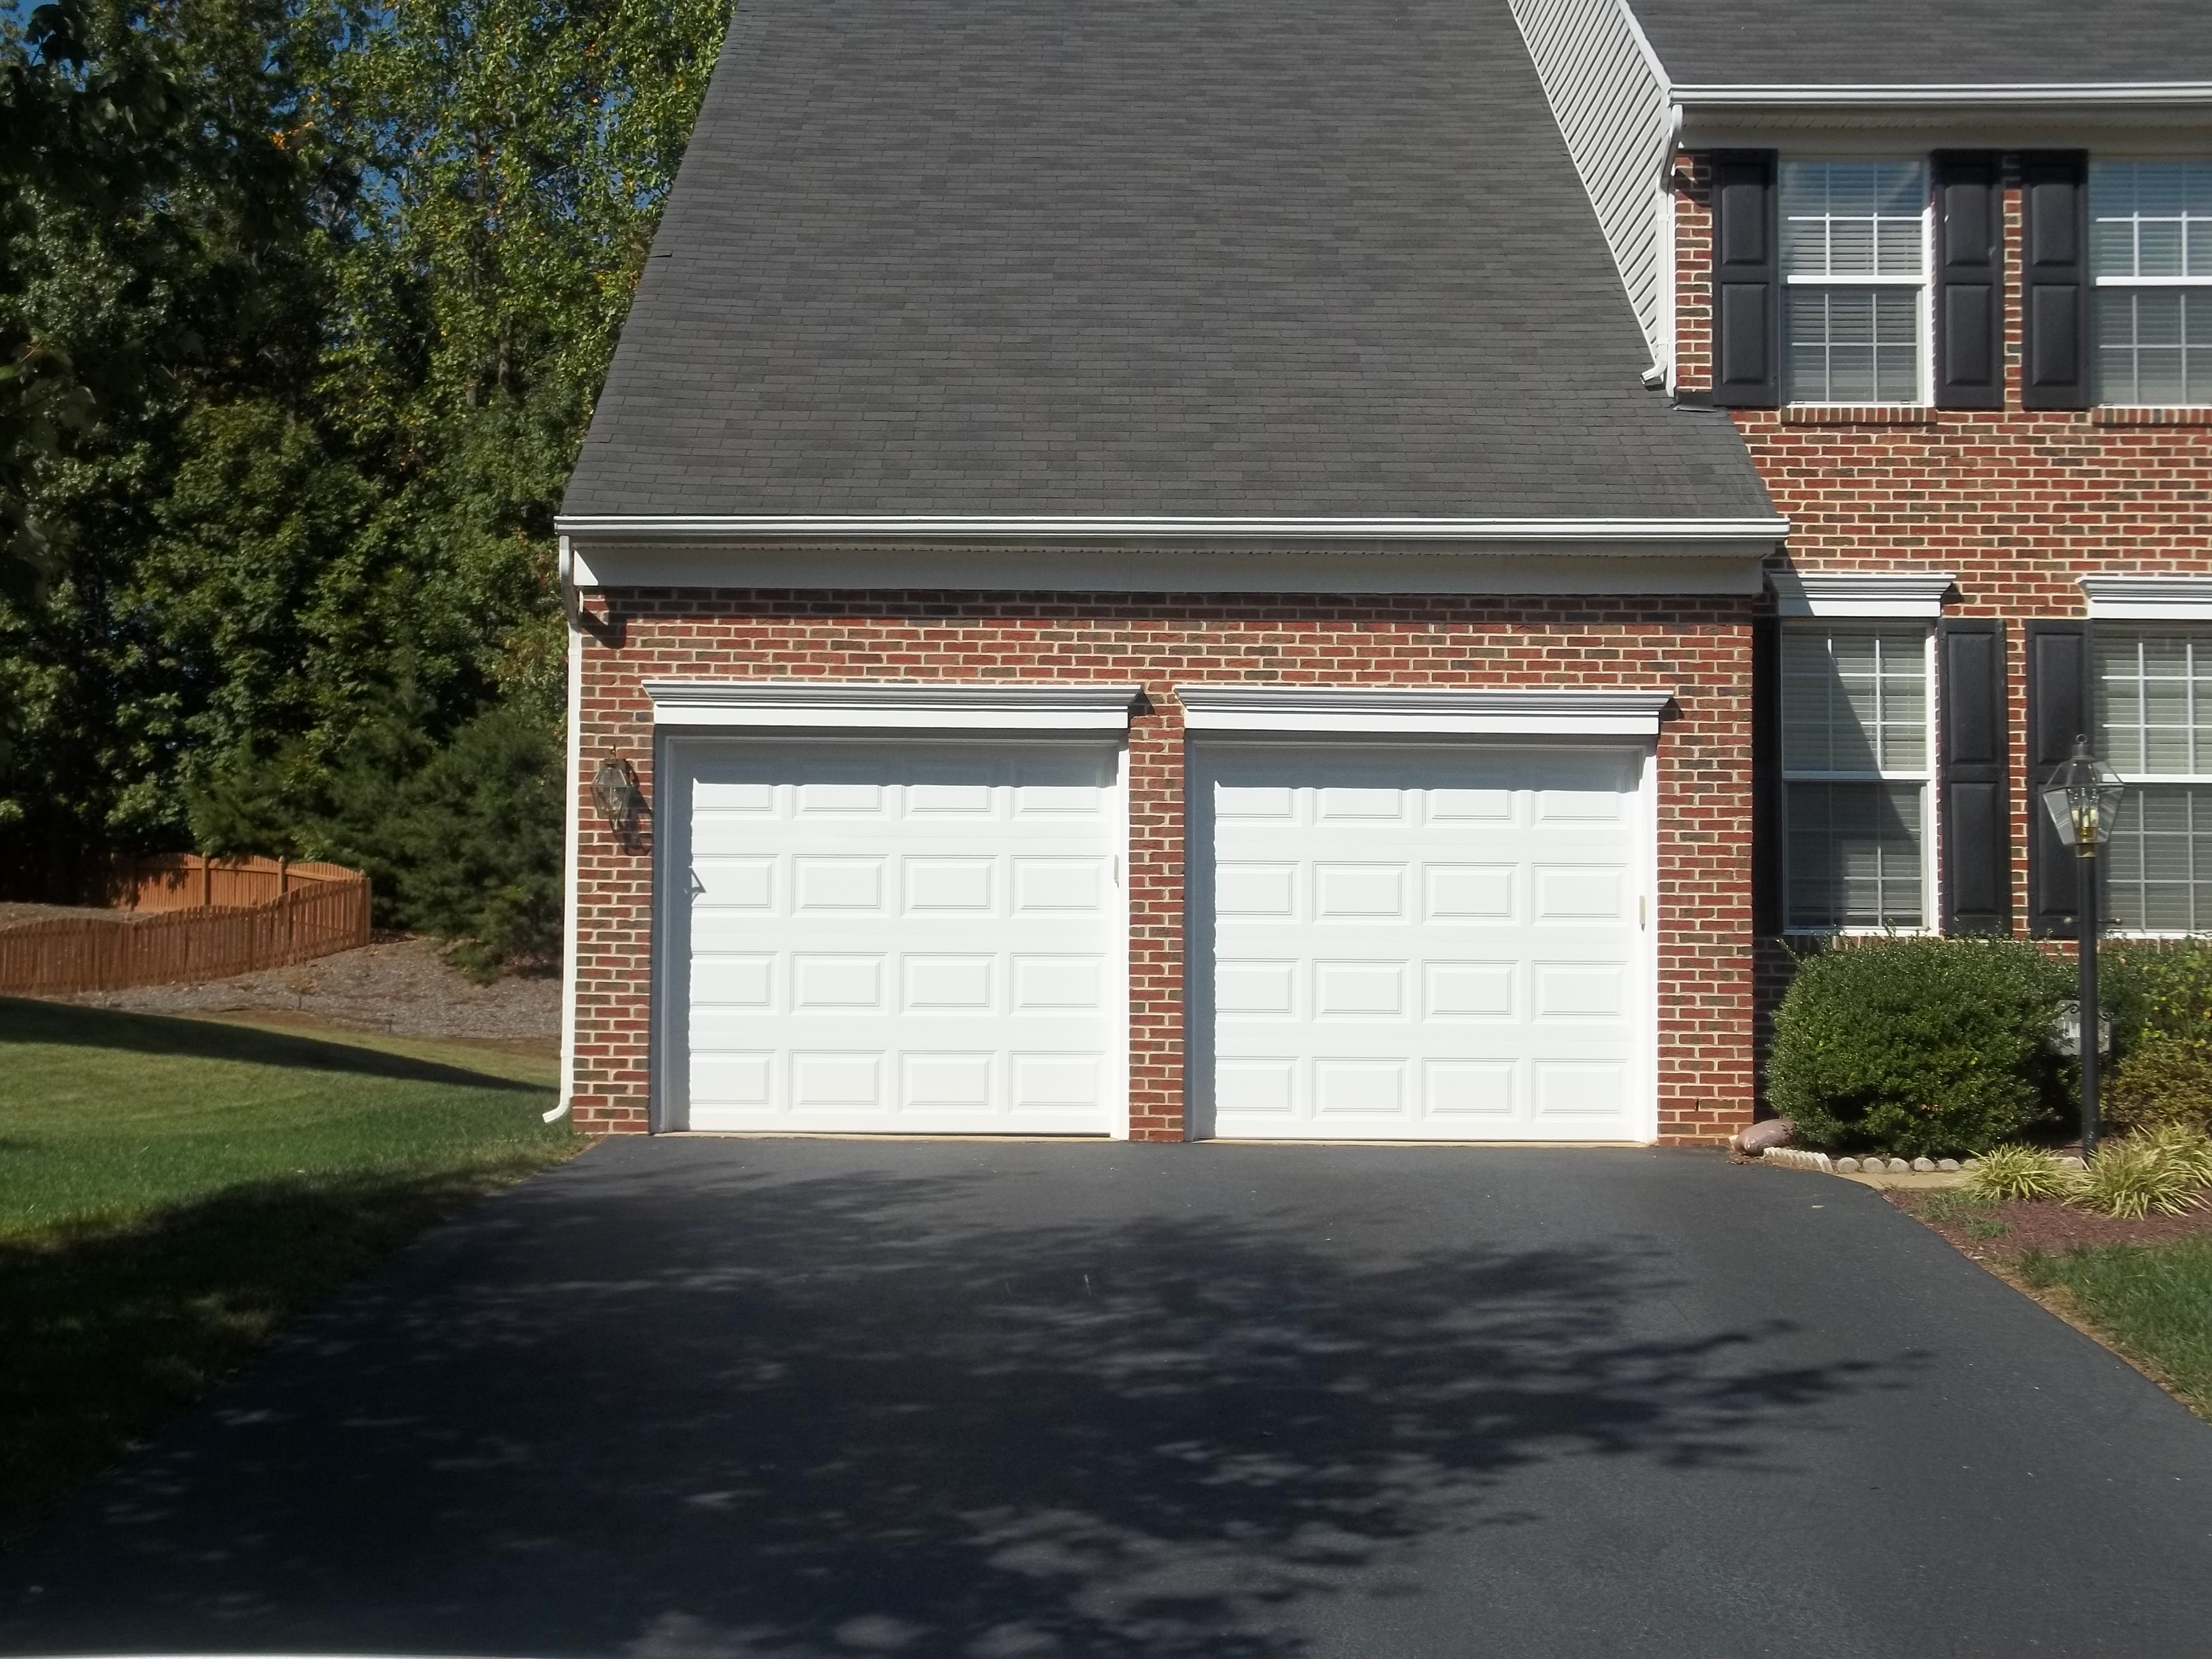 15514 P&lin Pipe Ct Manassas Va 20112 & Clopay 4050 Series Garage Door in Manassas Virginia - Affordable Door